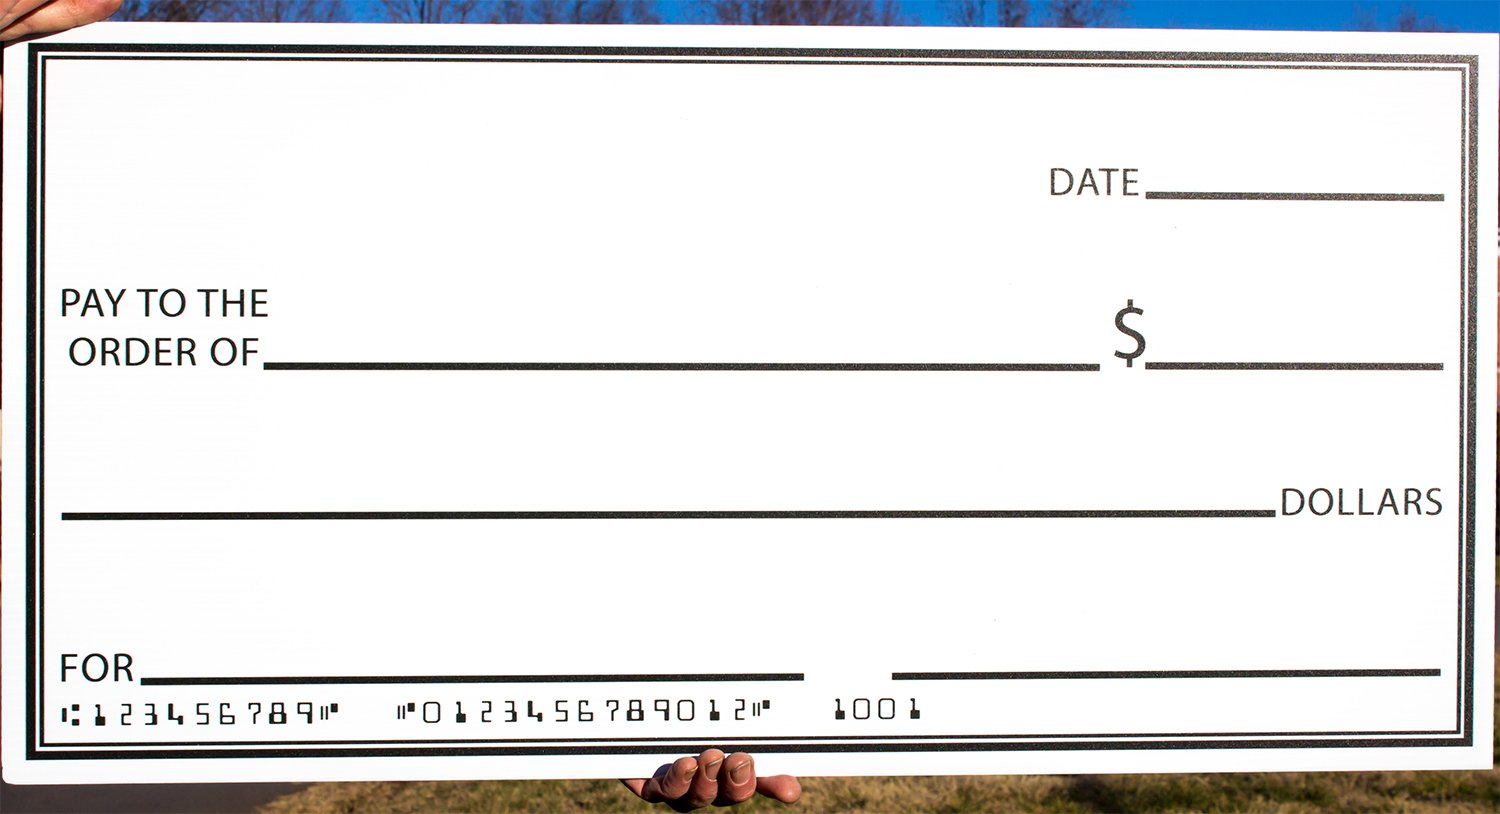 large fake check template - oversized checks big check presentation big money could